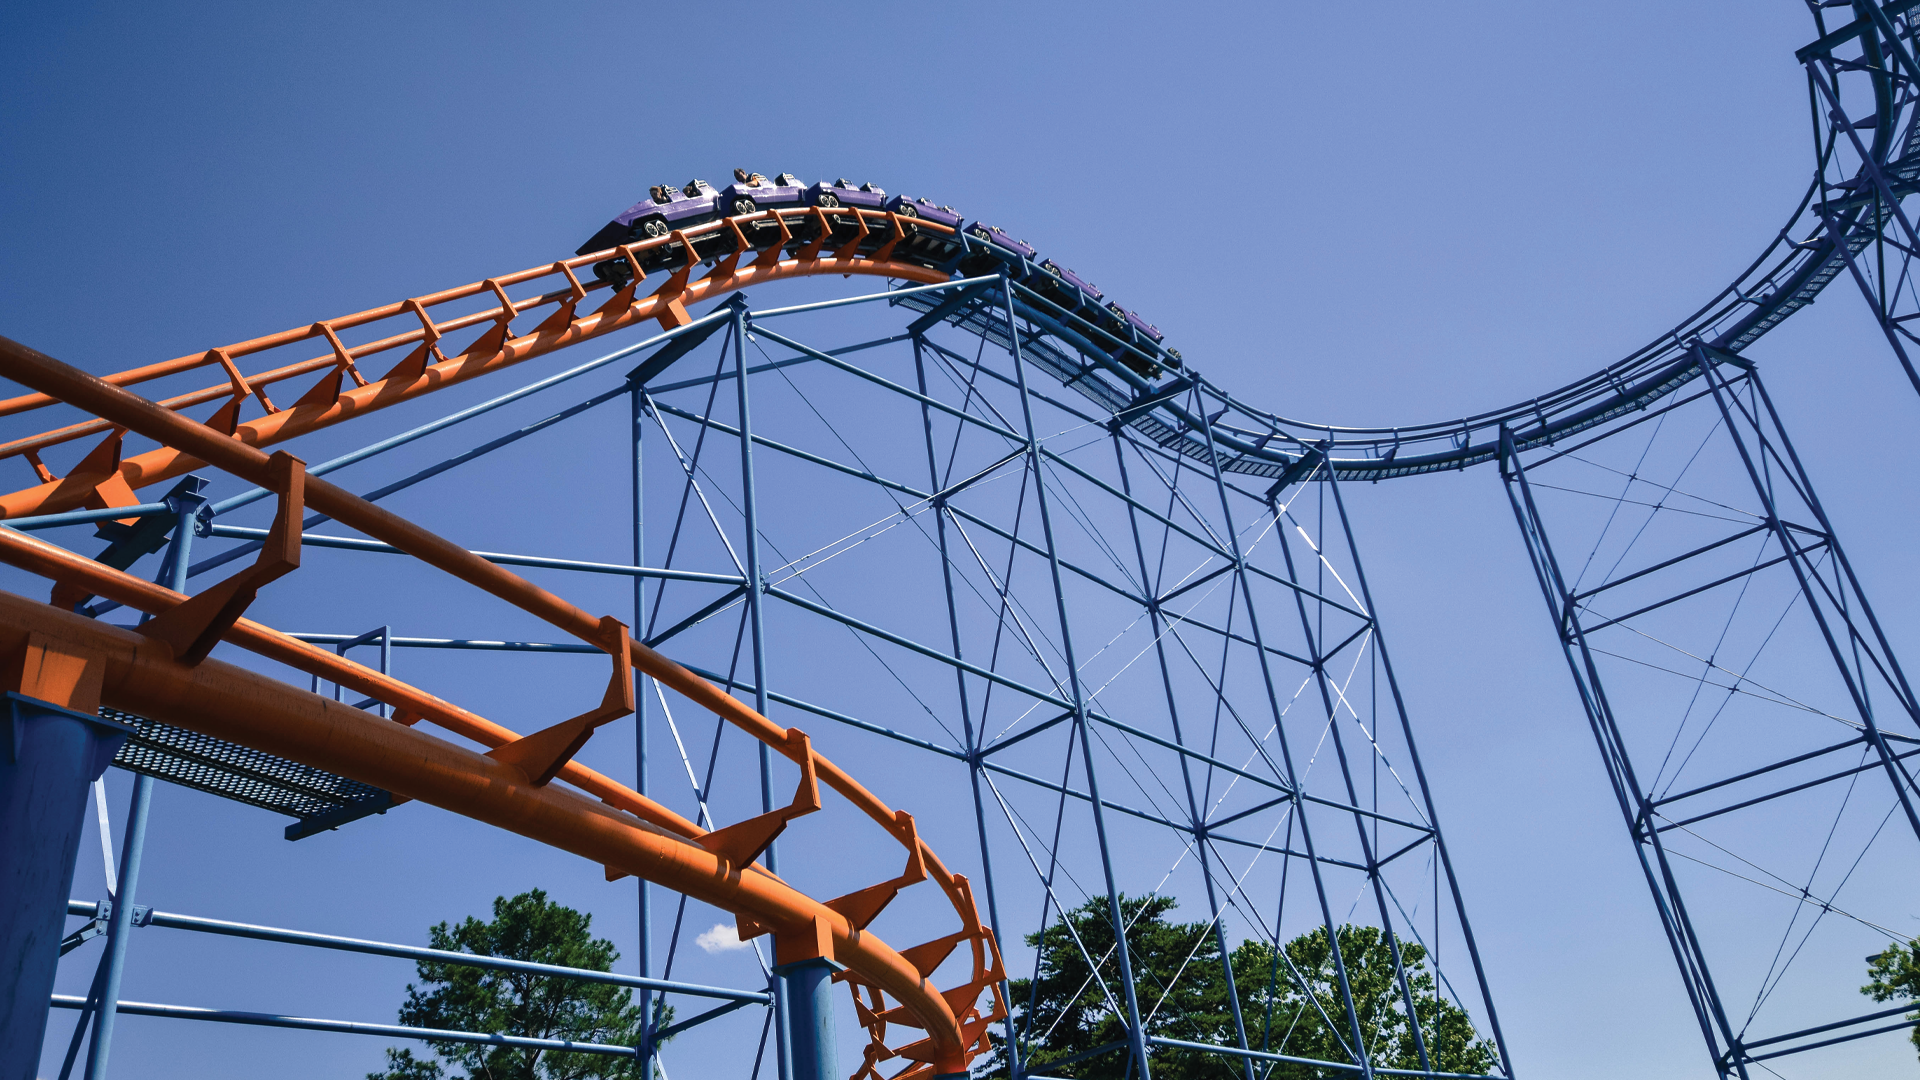 Carowinds' Classic Roller Coaster Carolina Cyclone Takes Families on a Ride